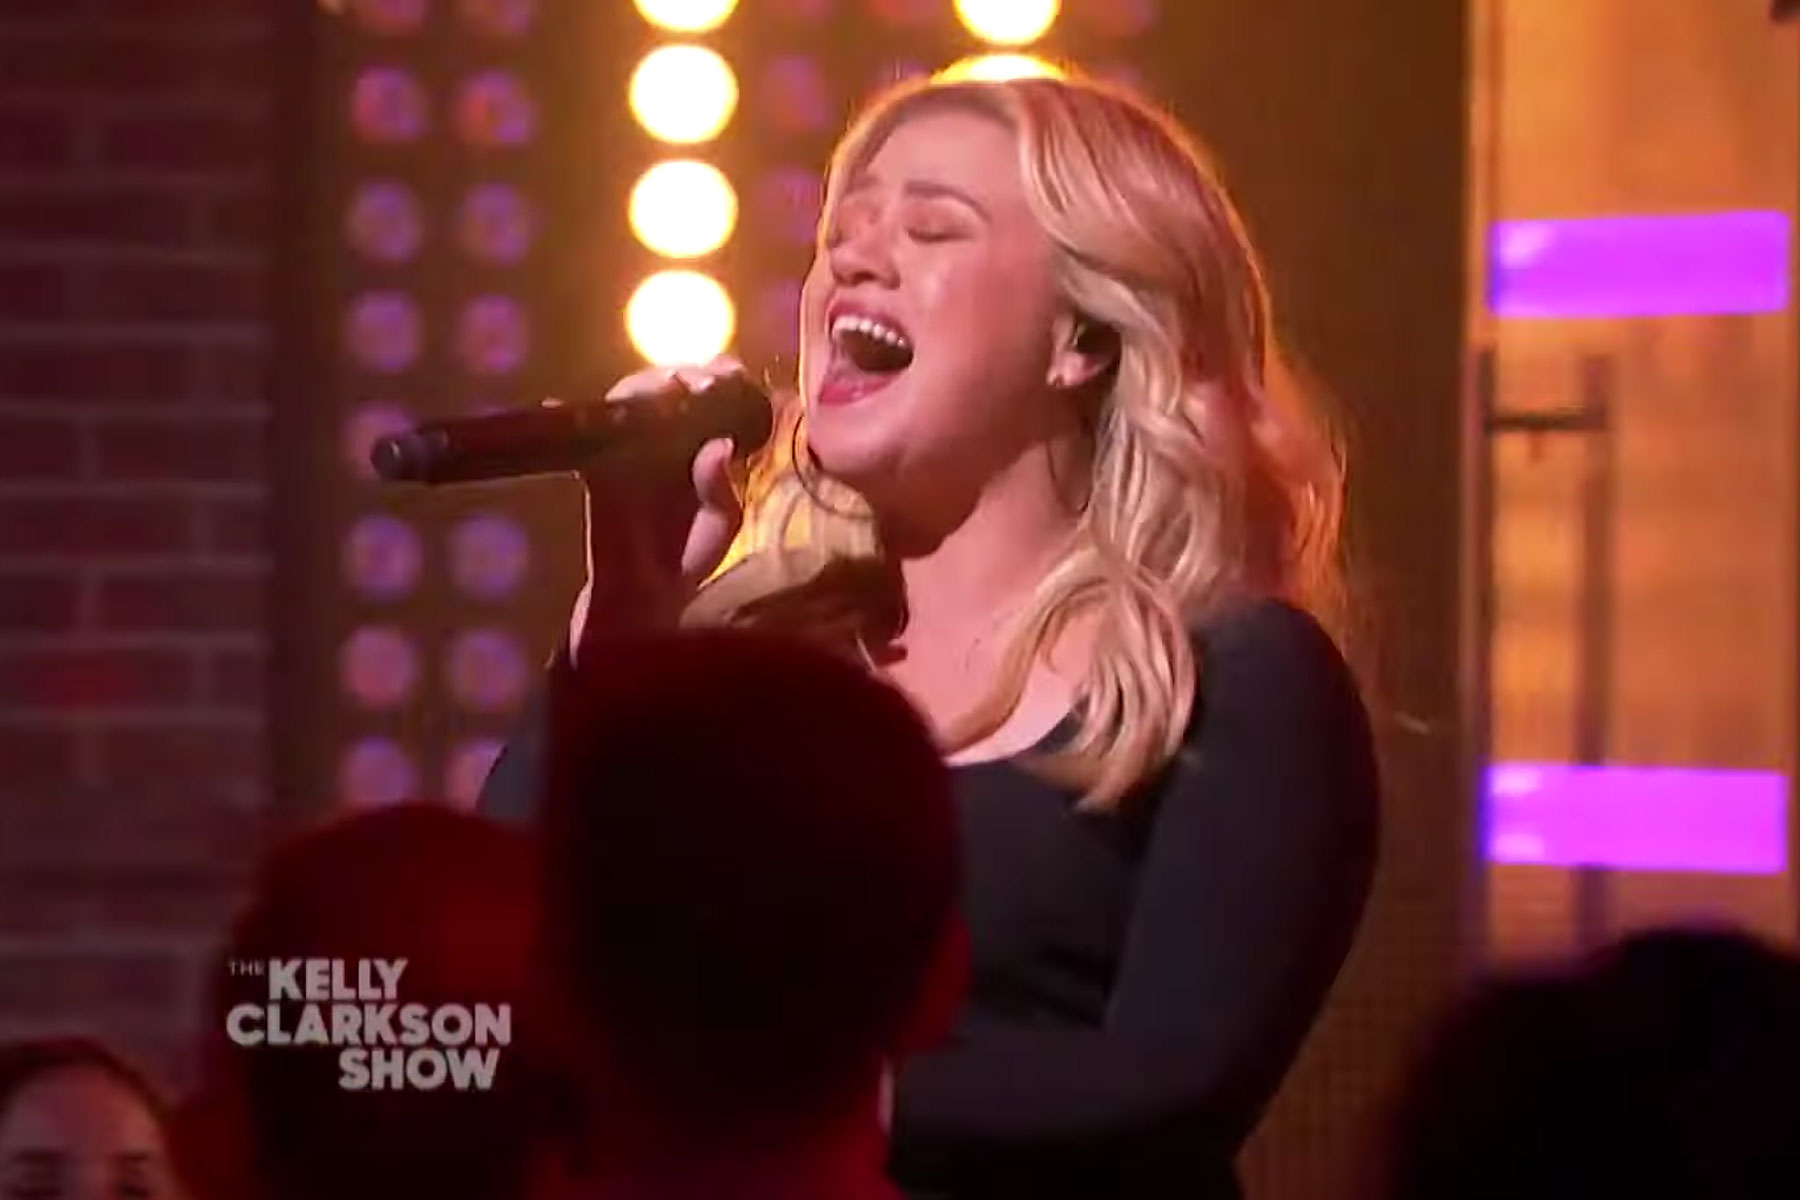 Kelly Clarkson Covers Lady Gaga's 'Bad Romance' on New Talk